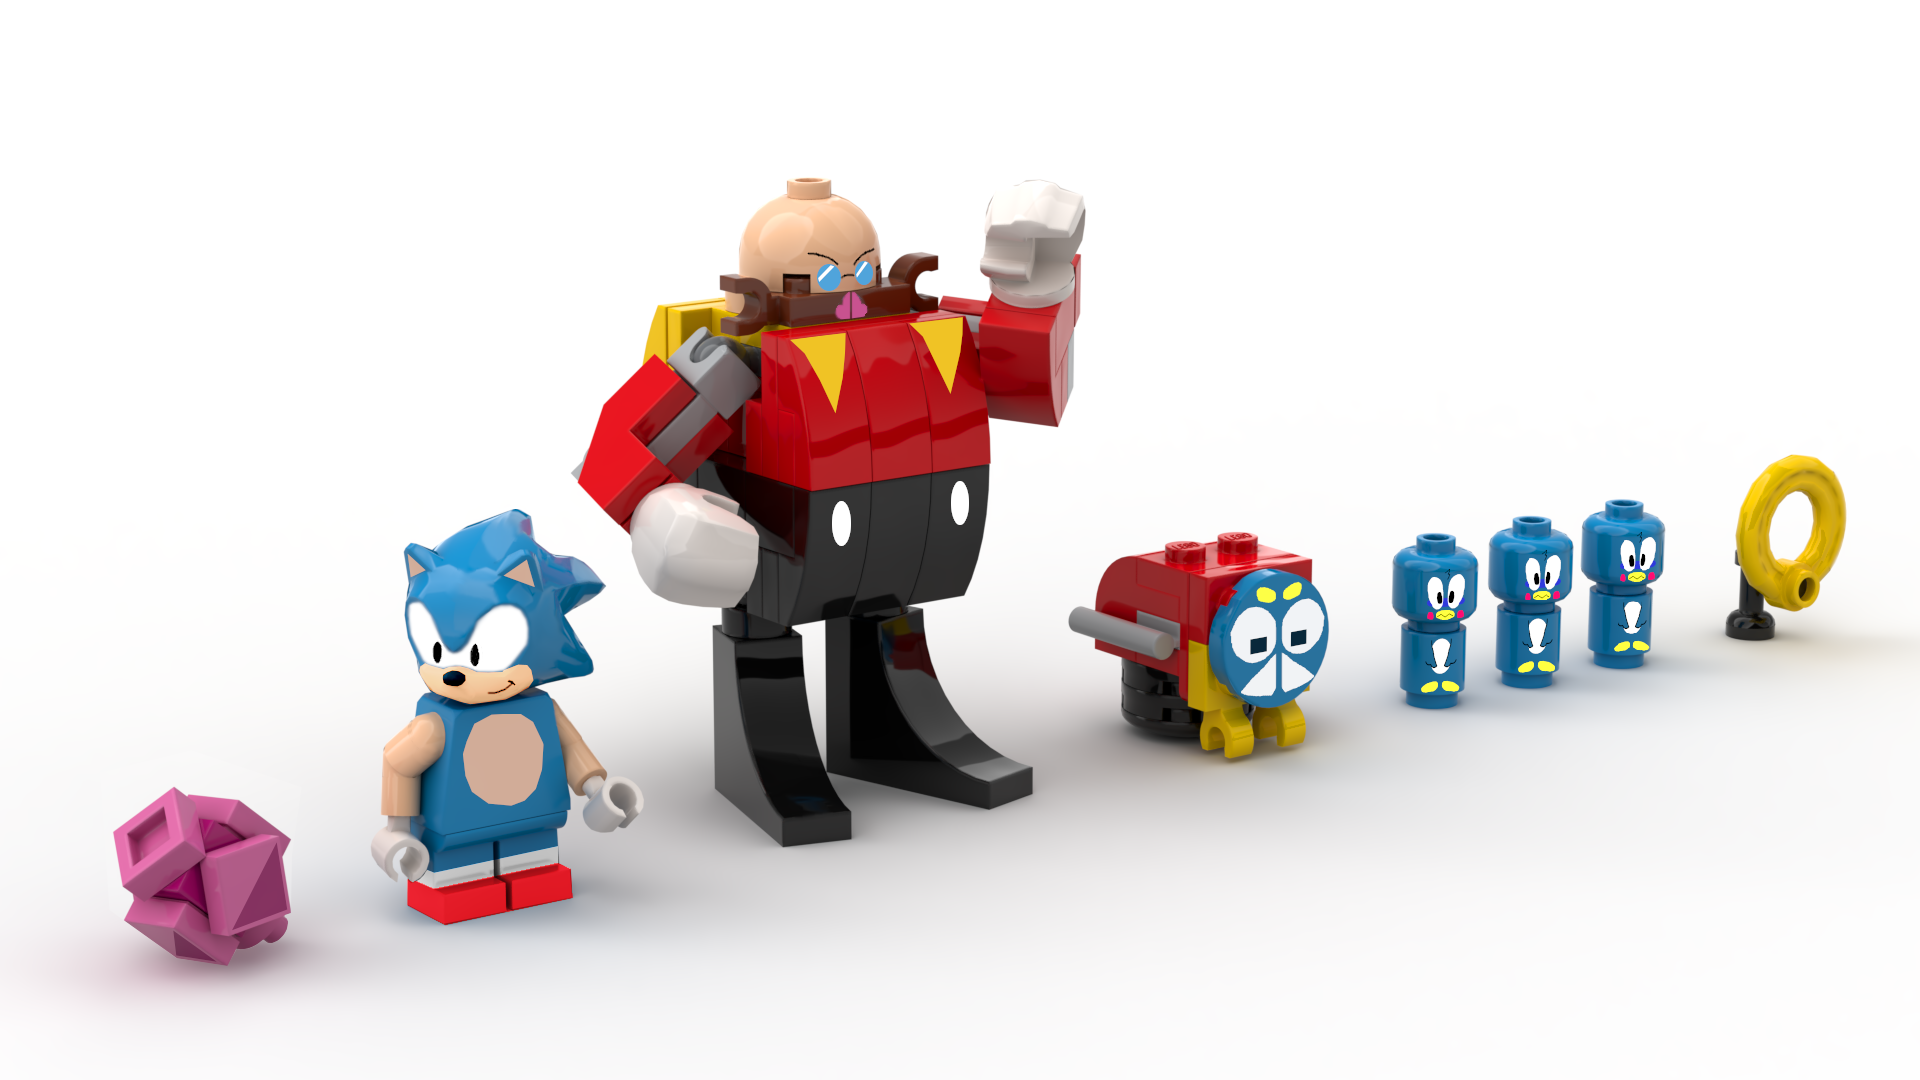 Pictures Of Lego Ideas Features A Proposed Sonic The Hedgehog Set 7 8